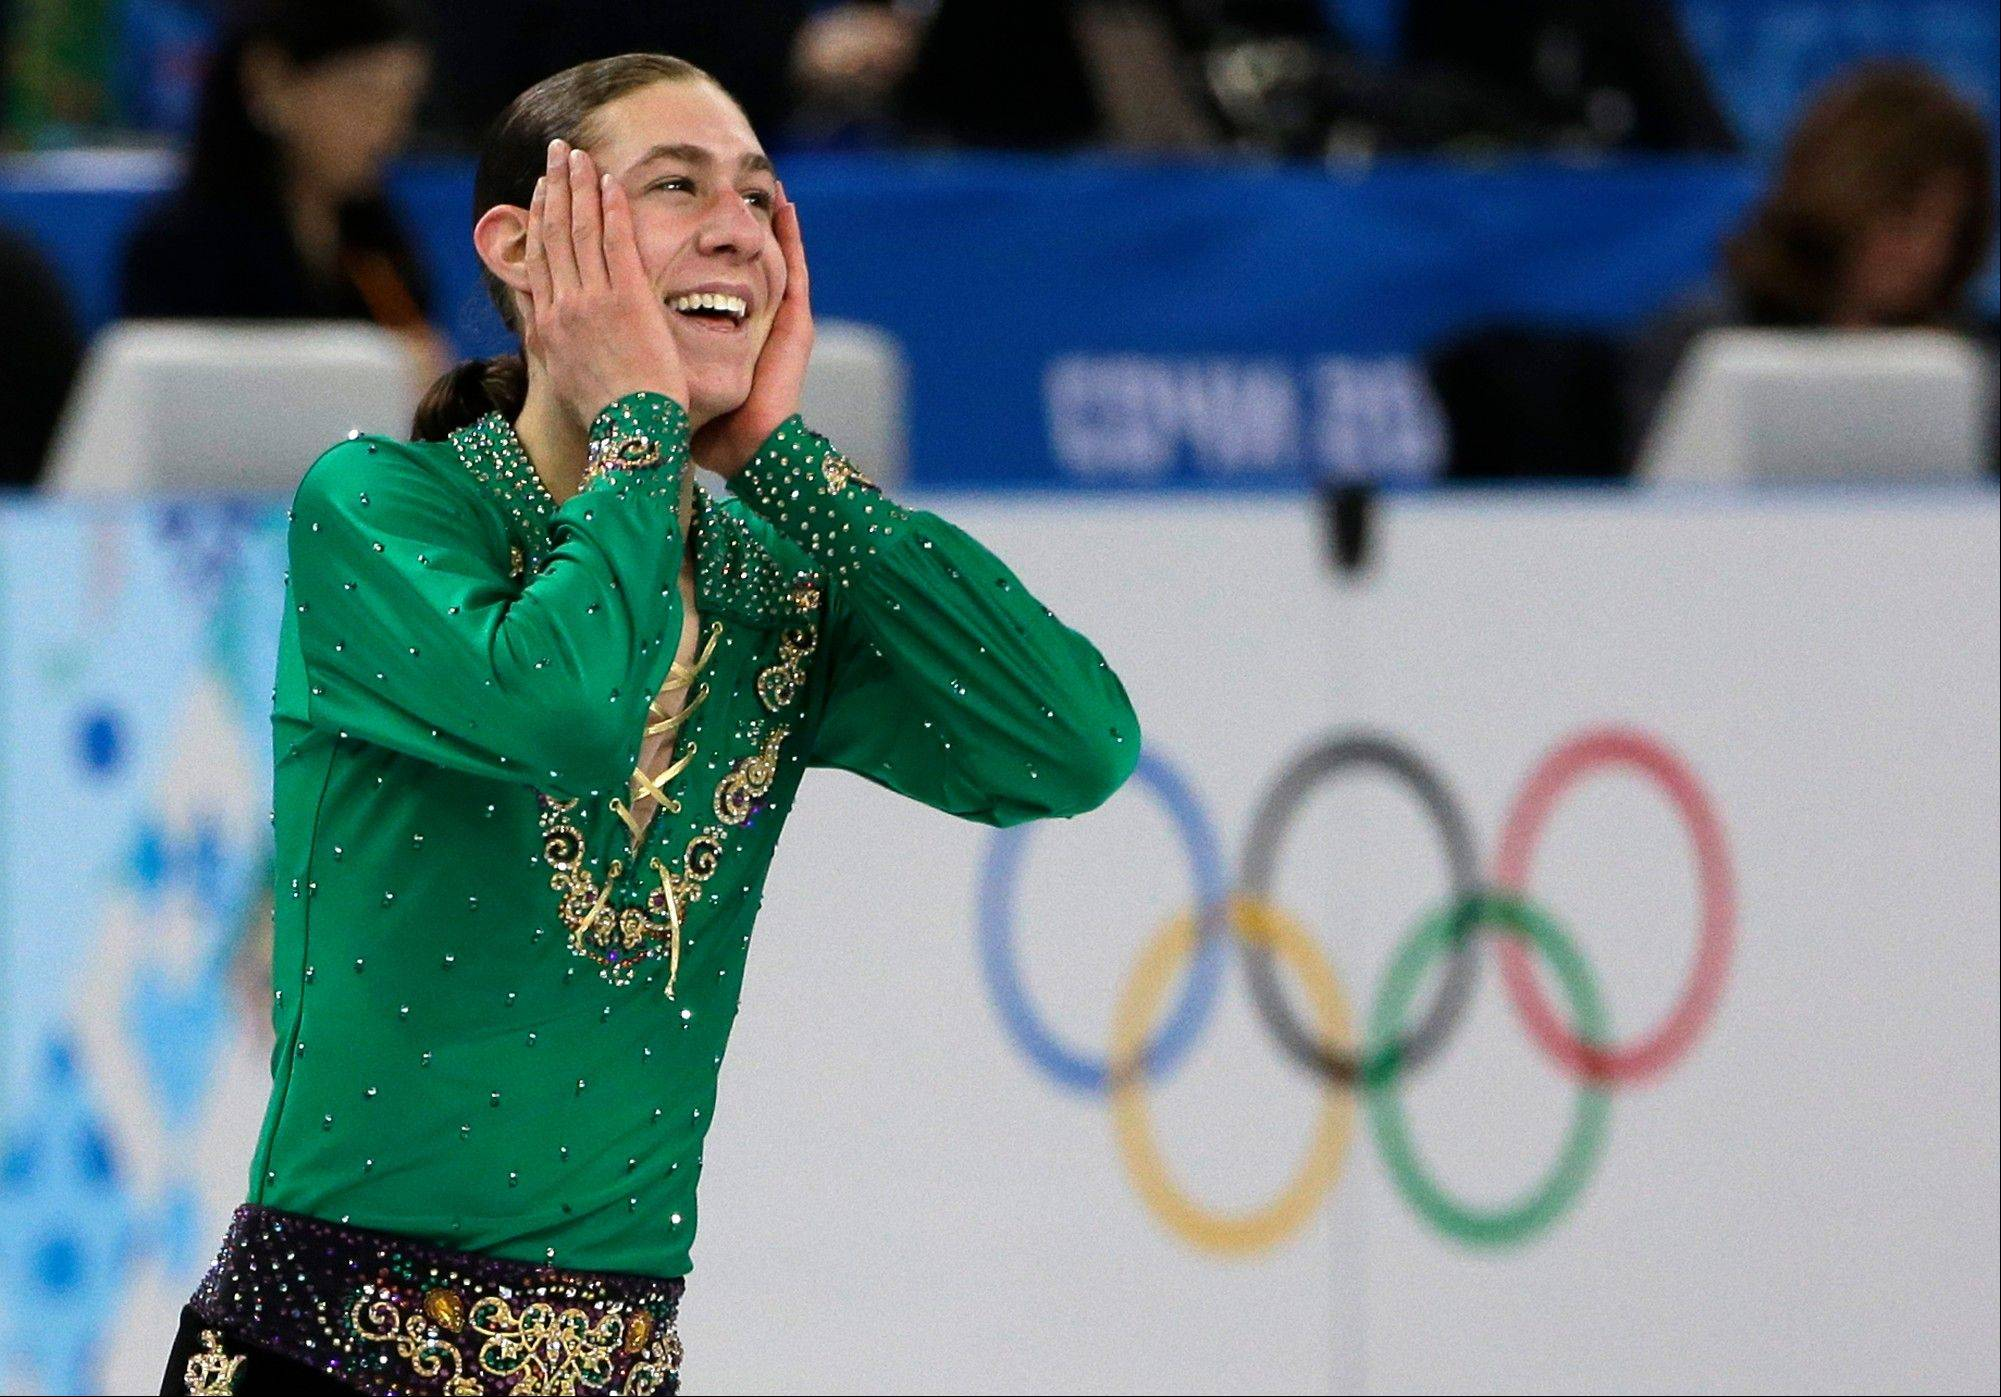 Jason Brown of Highland Park smiles Sunday after competing in the men's team free skate figure skating competition at the Iceberg Skating Palace during the 2014 Winter Olympics in Sochi, Russia.